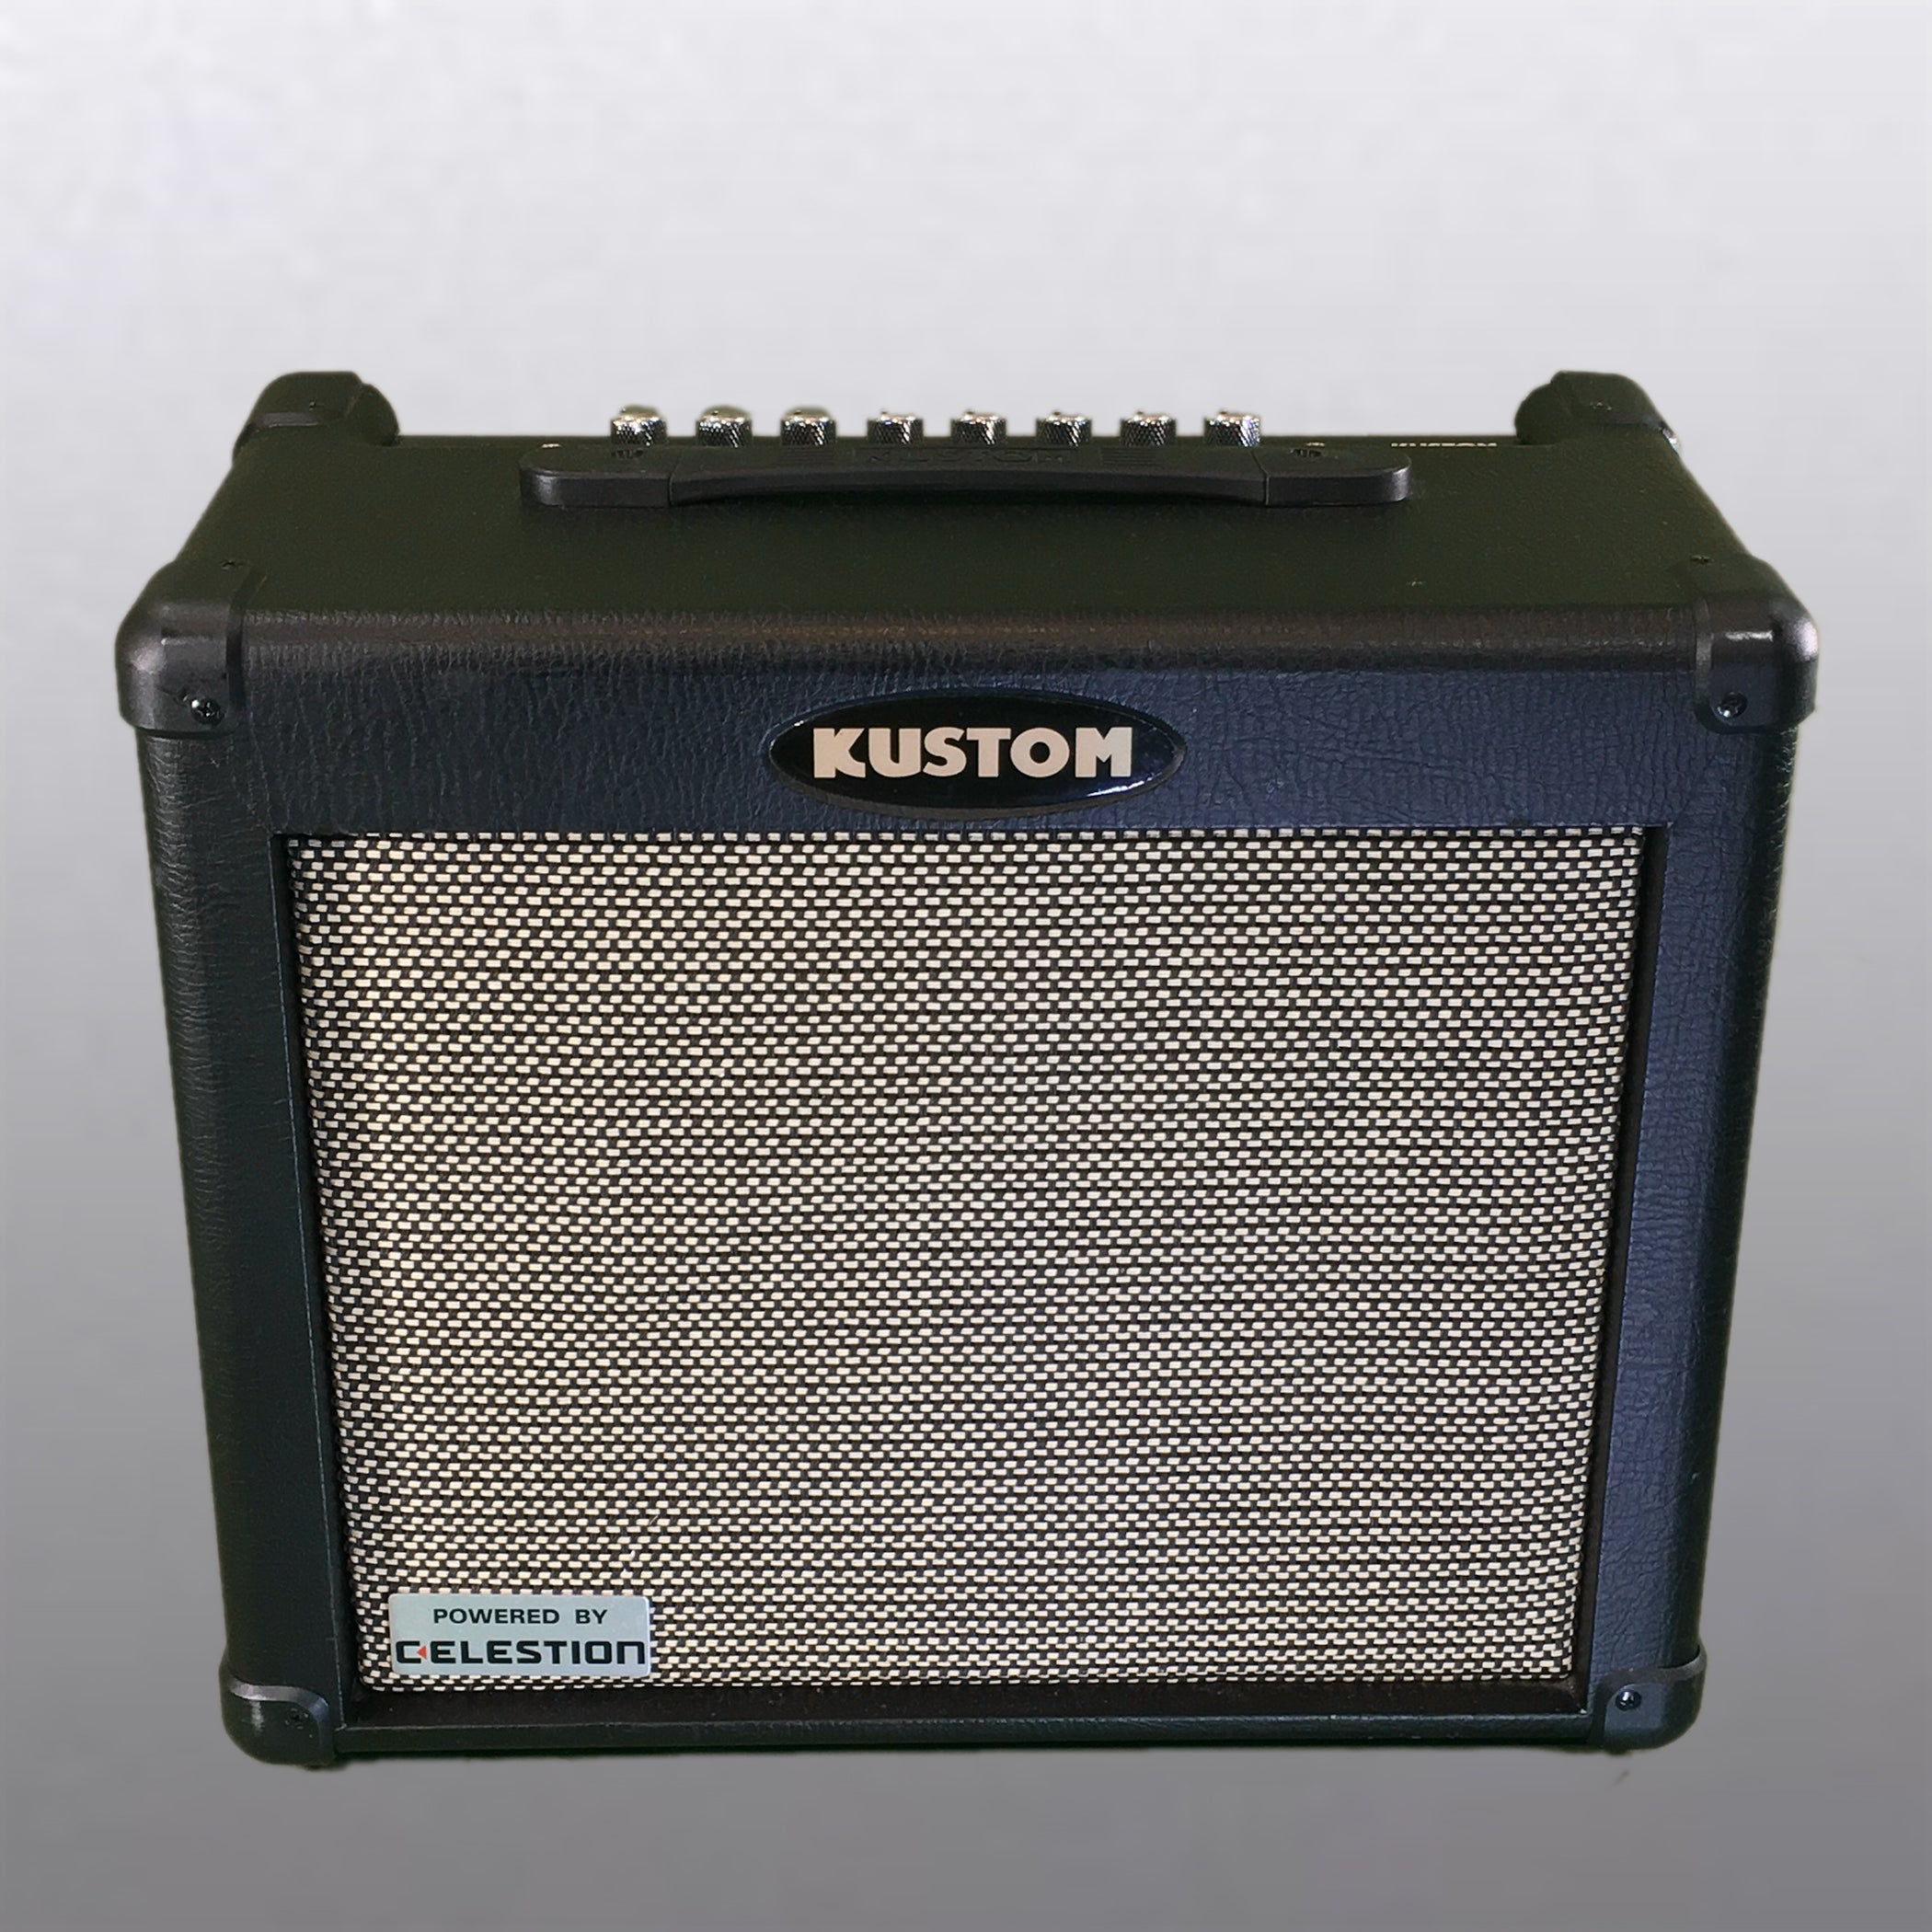 Guitar Amplifiers Tagged Amplifier Page 2 Huber Breese Music 70 Watt Circuit Preamplifier Tone Control For Kustom Dual 30rc 30w 1x10 Channel Combo Used